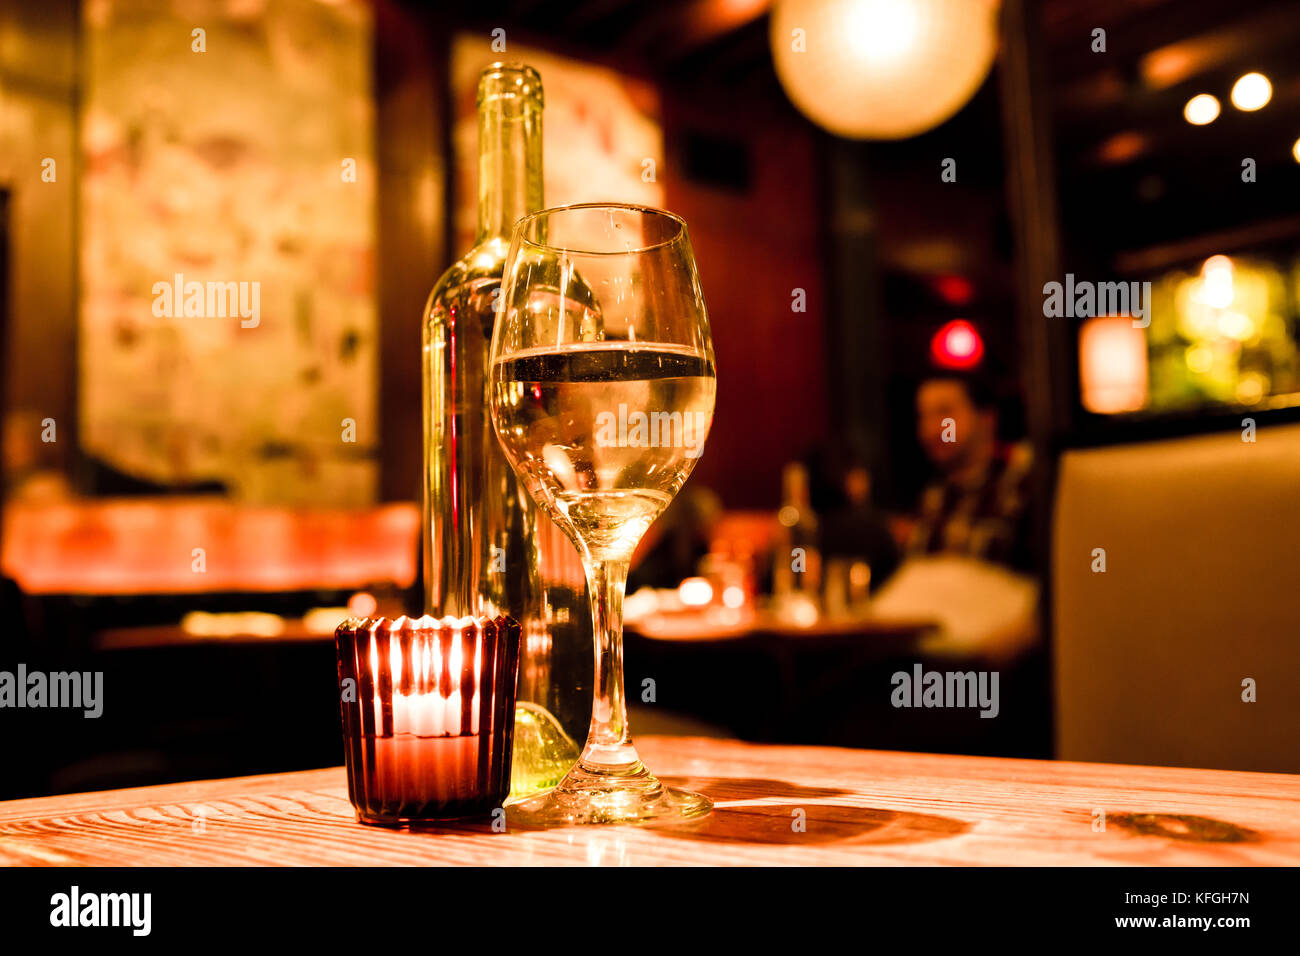 Wine glass, bottle and candle on table in restaurant with warm light - Stock Image